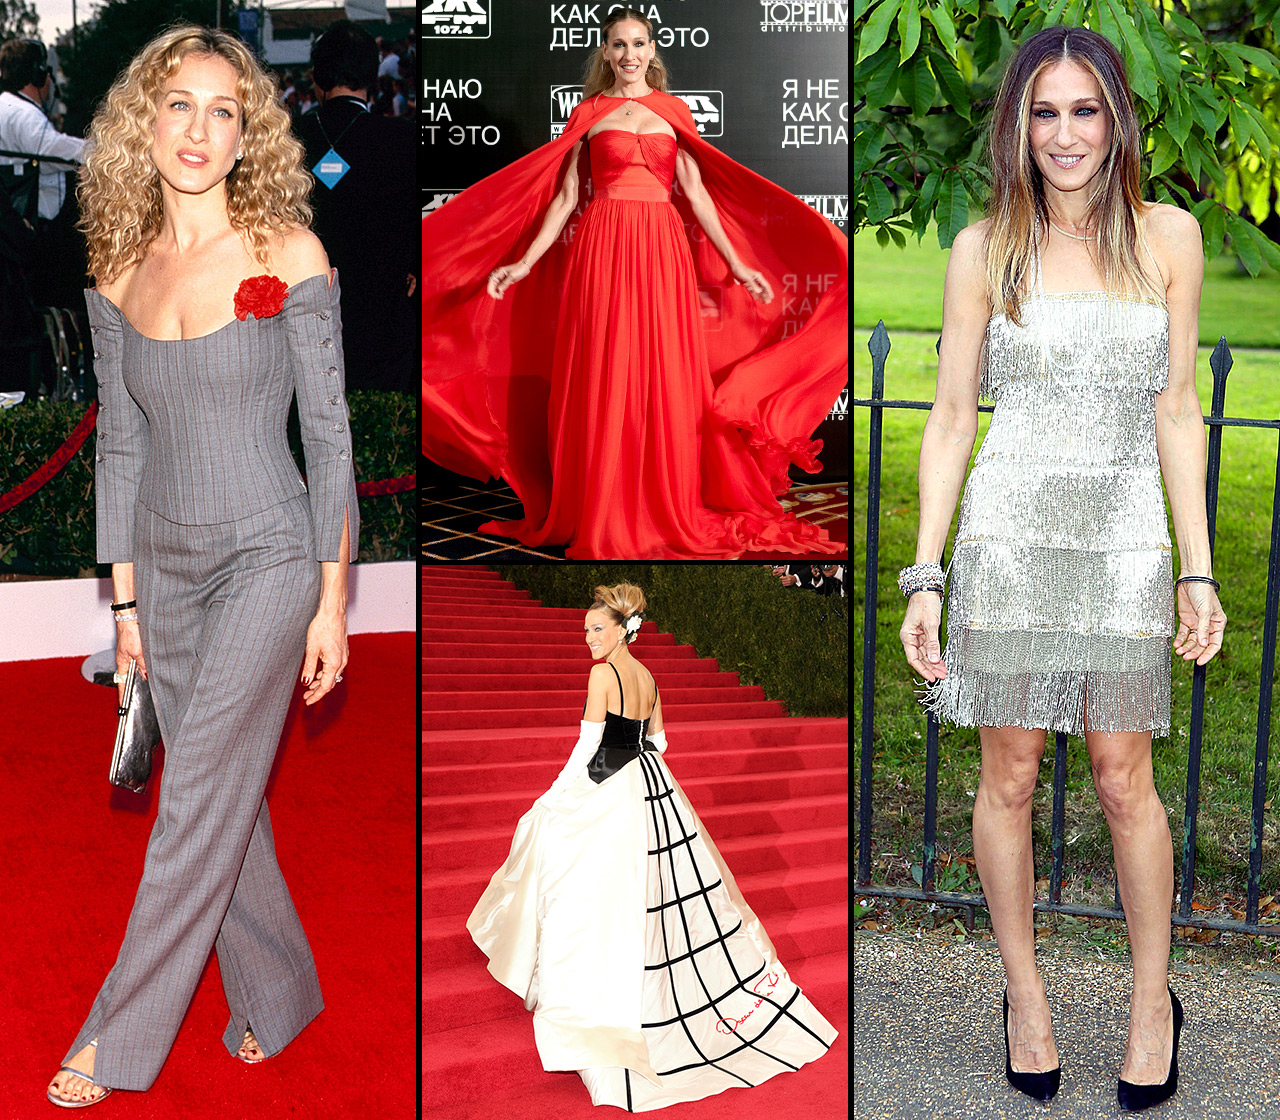 Happy Birthday, Sarah Jessica Parker ! The former Sex and the City actress turns 54 on Monday, March 25, and while her on-screen character Carrie Bradshaw may be the most fashionable woman in television history, SJP is every bit the style star IRL.